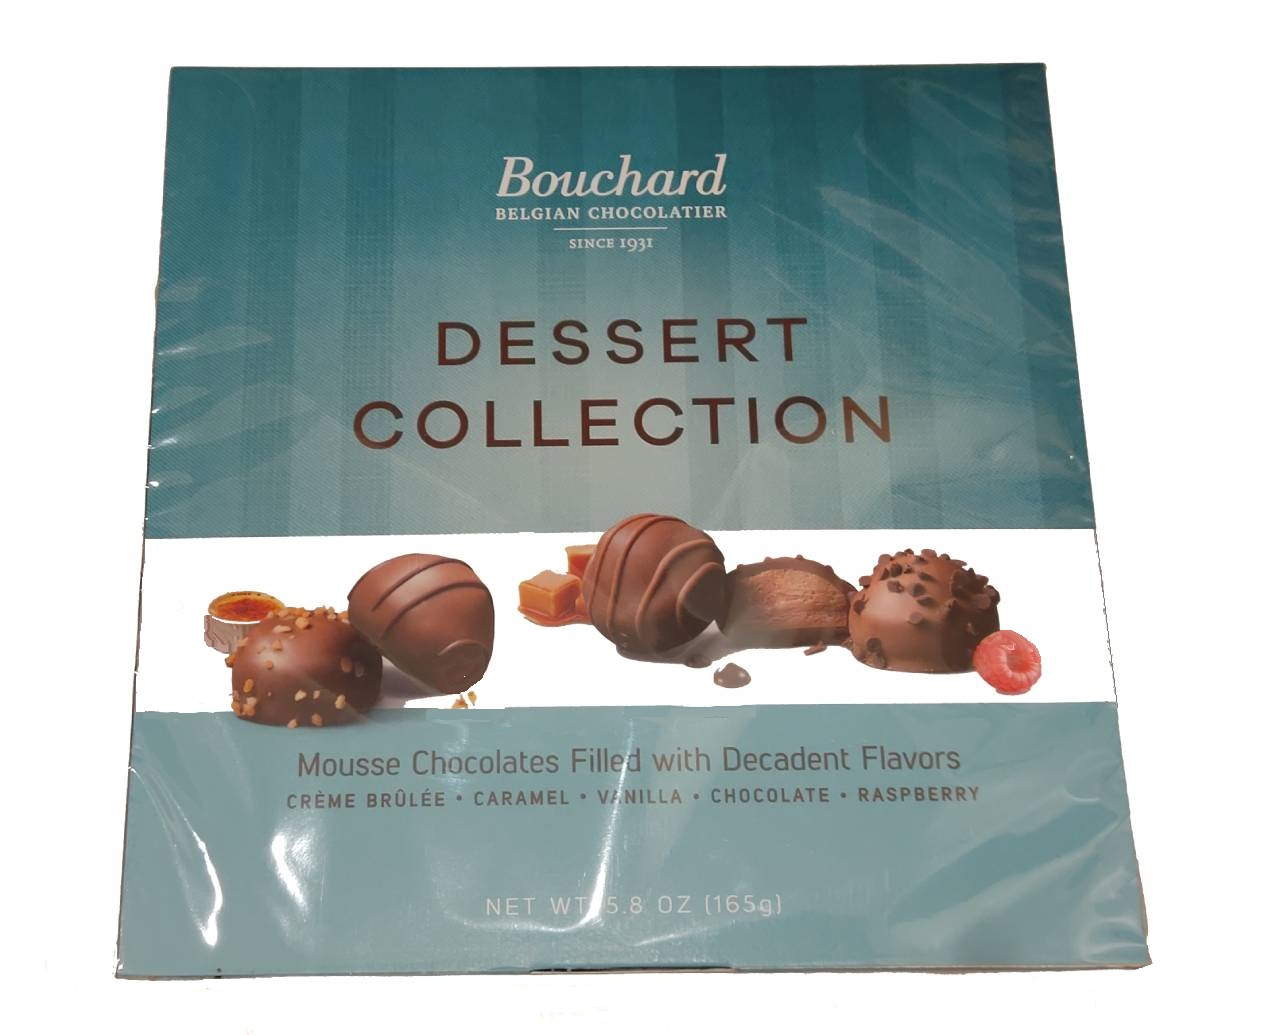 Bouchard Dessert Collection